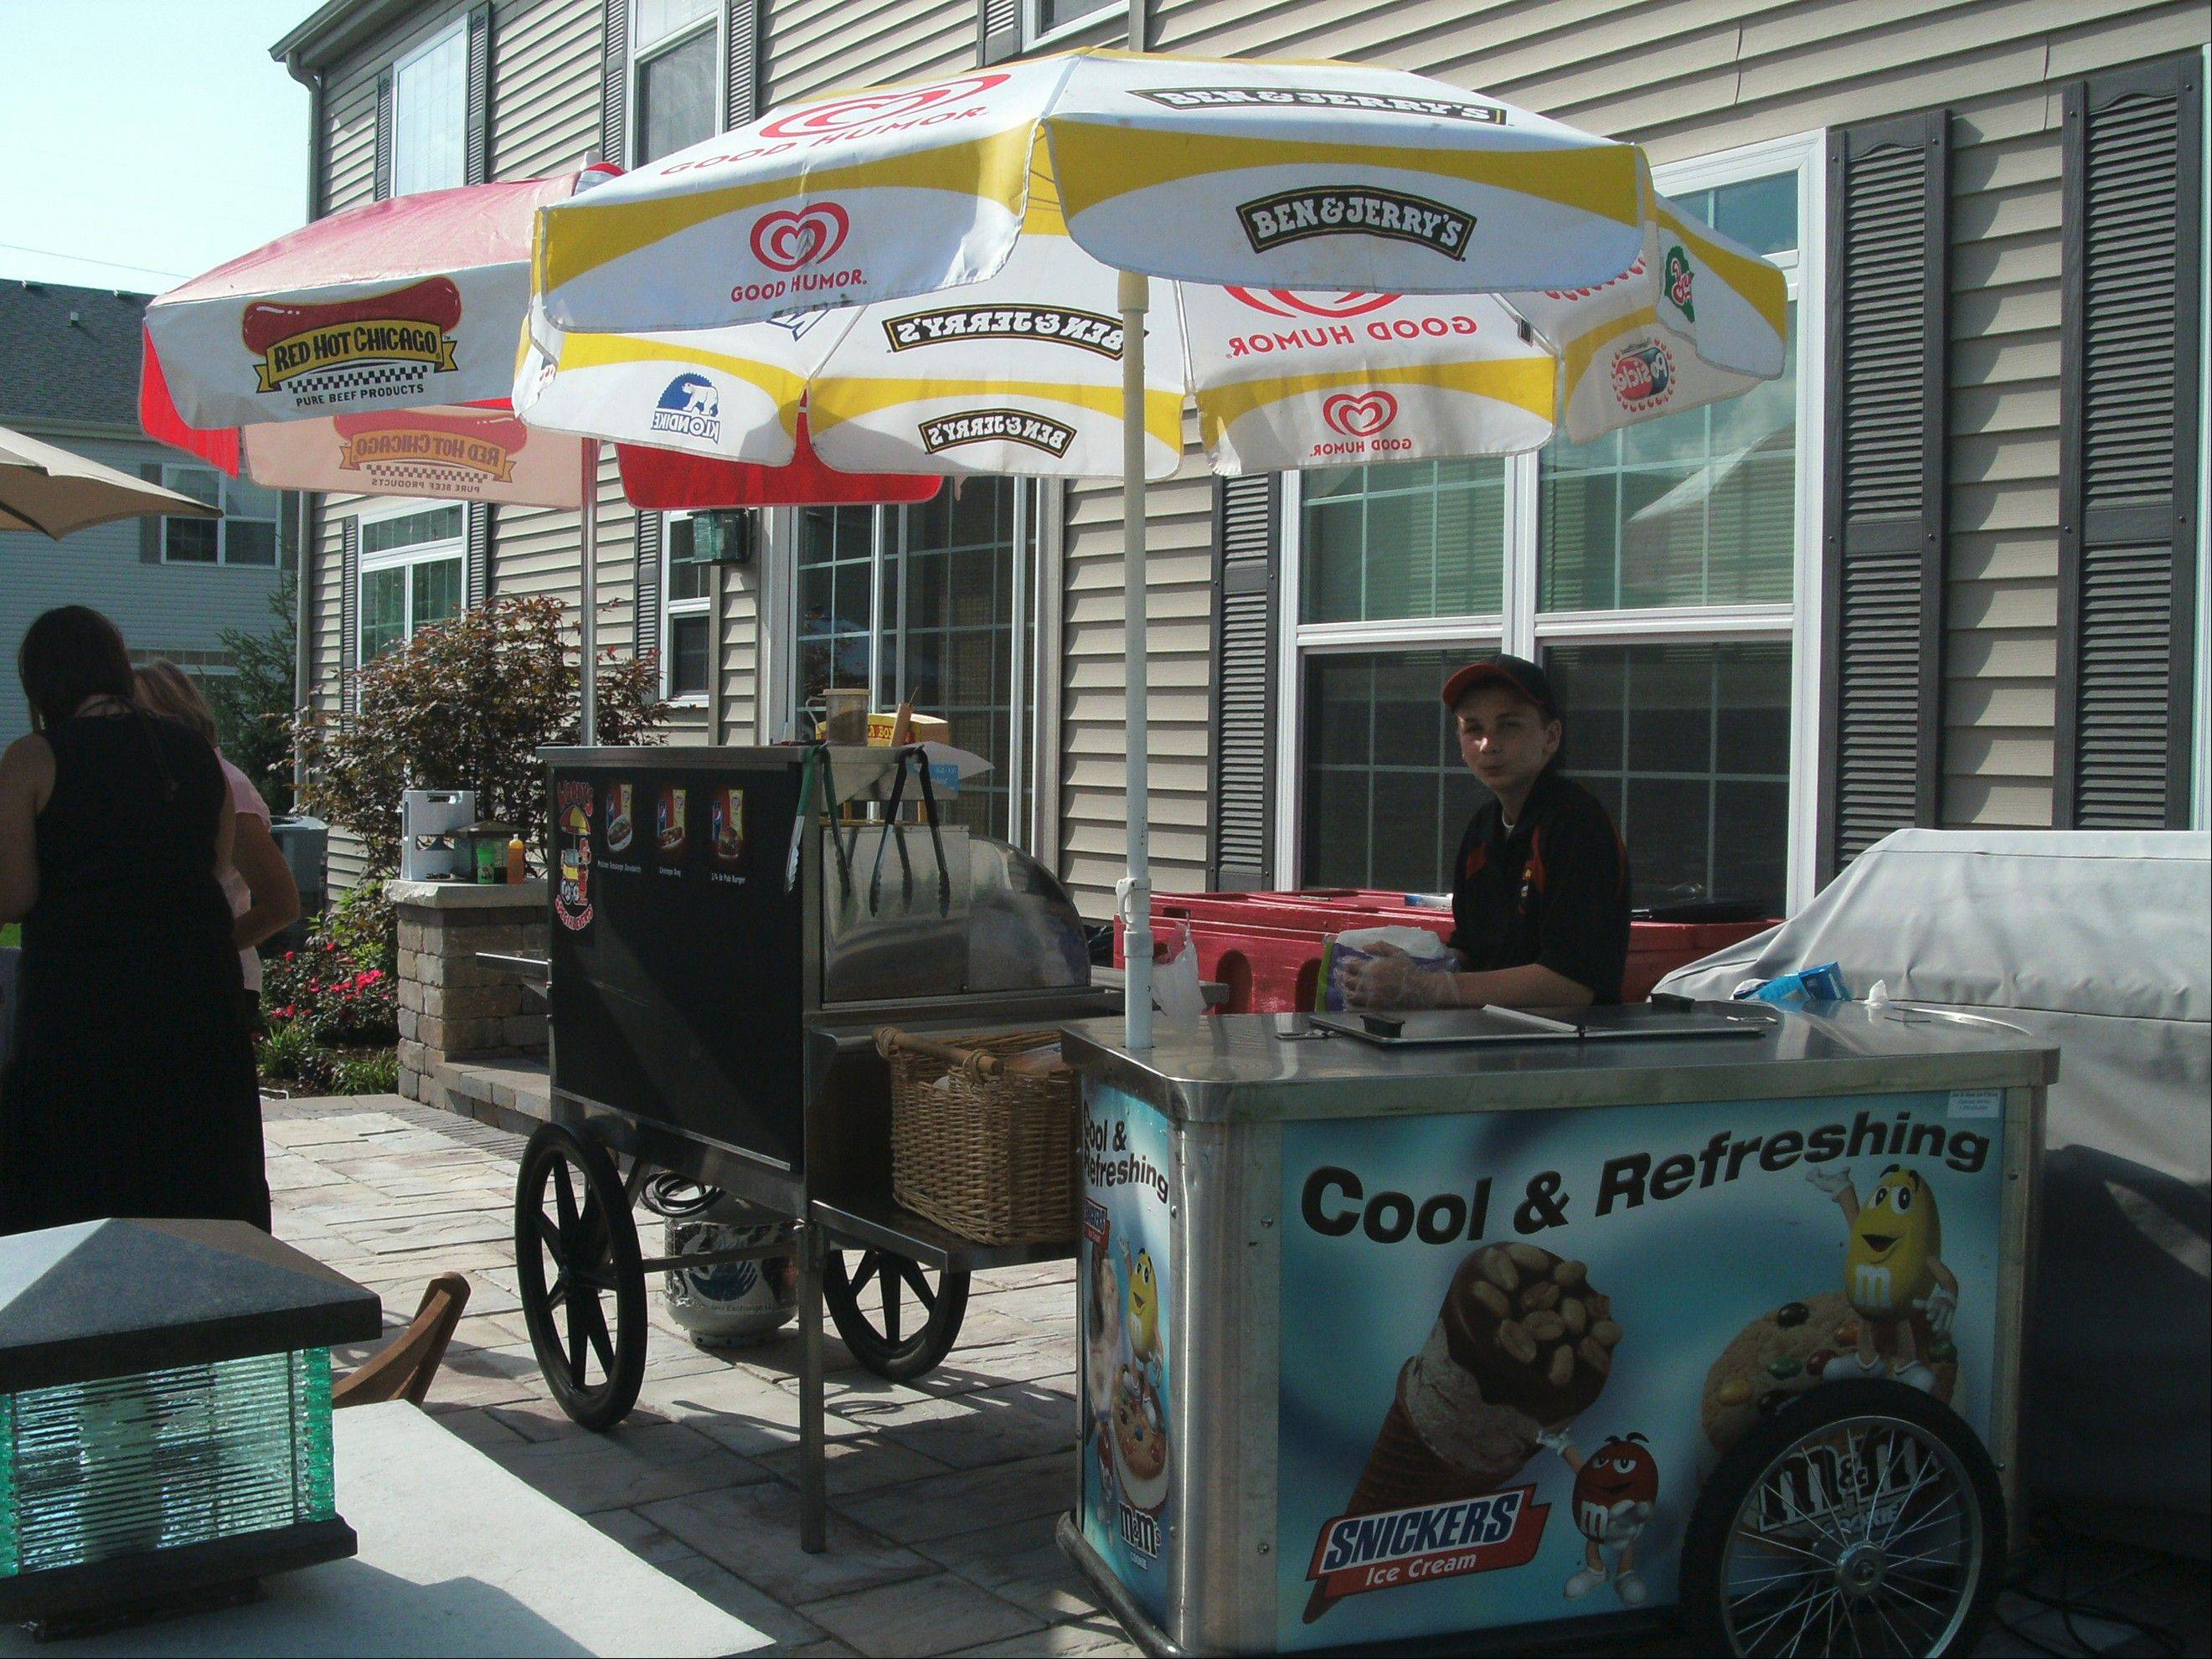 Hot dogs, ice cream and other carnival fare are popular go-to items for parties. Uniformed servers add a touch of authenticity.